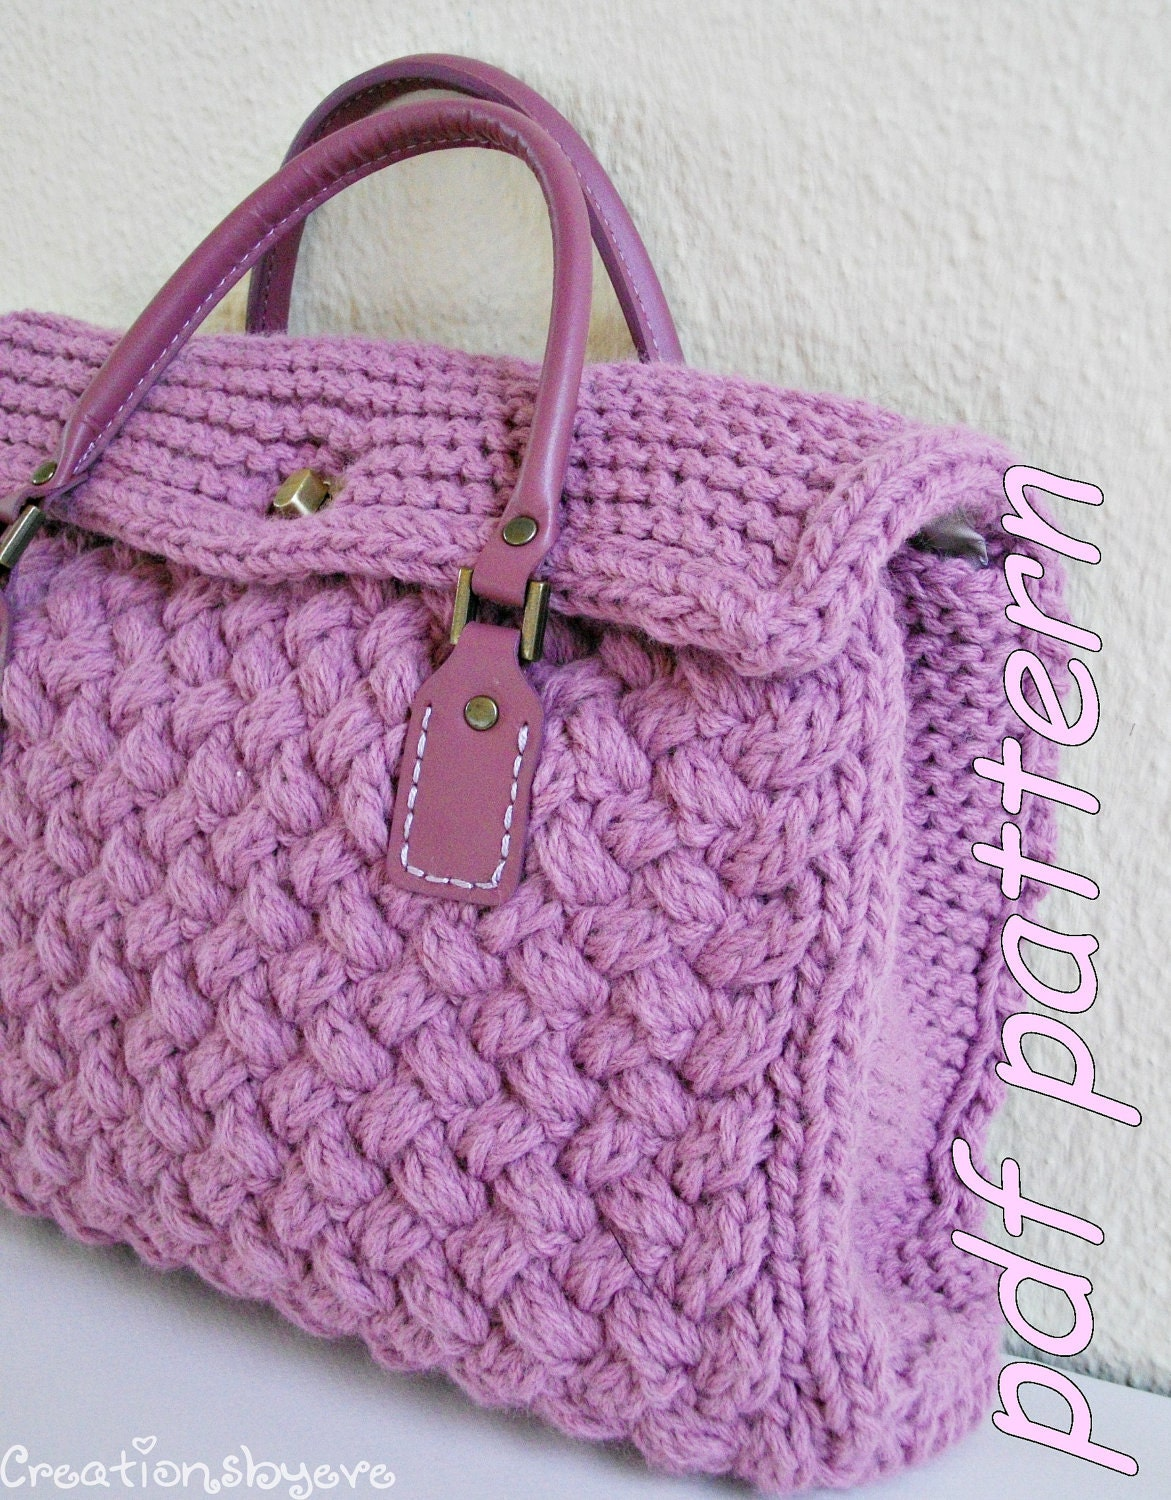 Knitting Bag : Stylish small textured hand-knit bag PDF by creationsbyeve